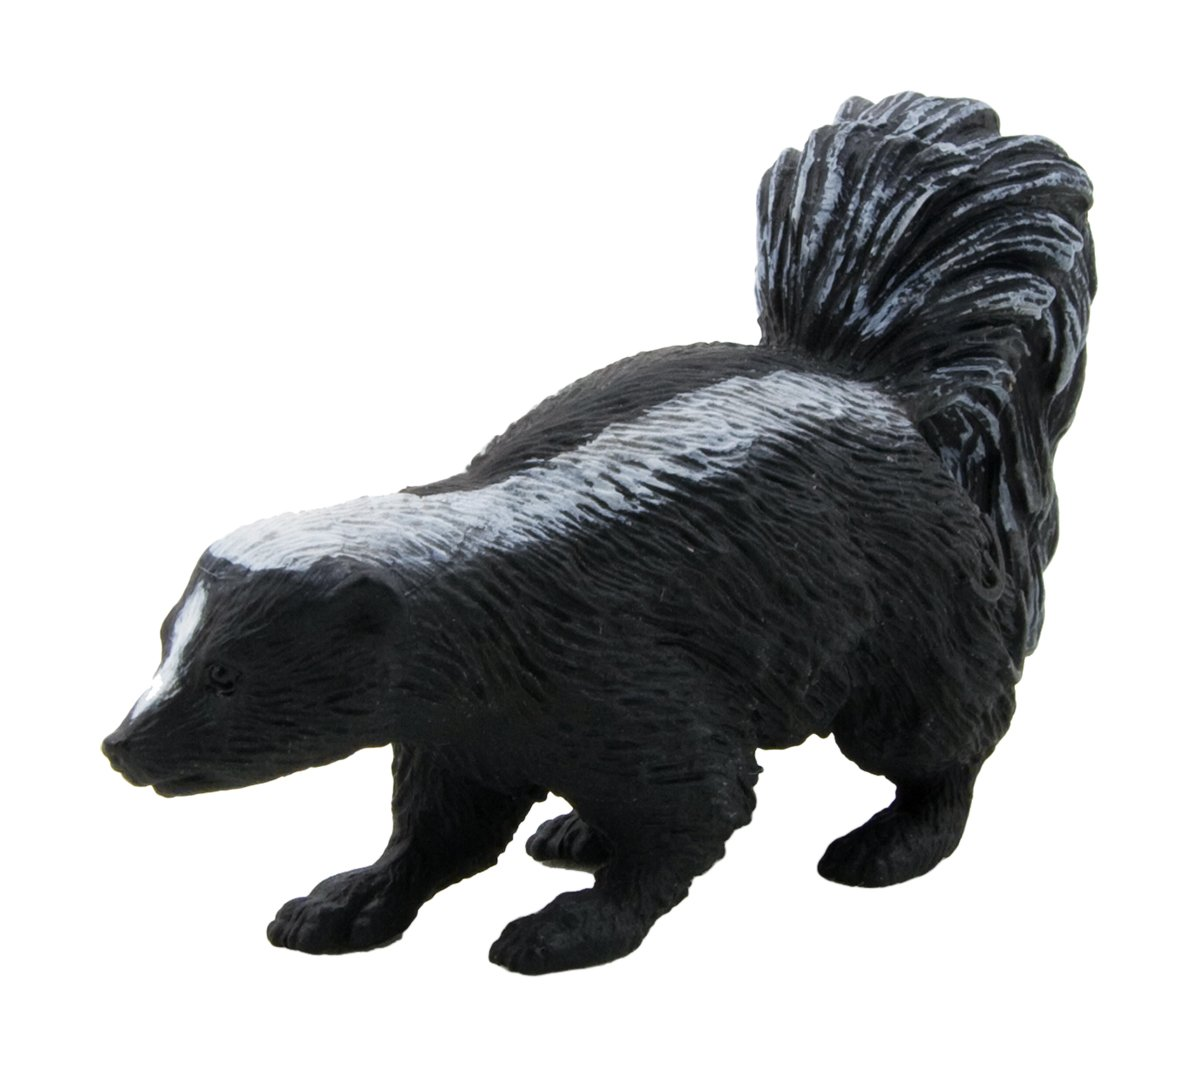 MOJO Skunk Toy Figure